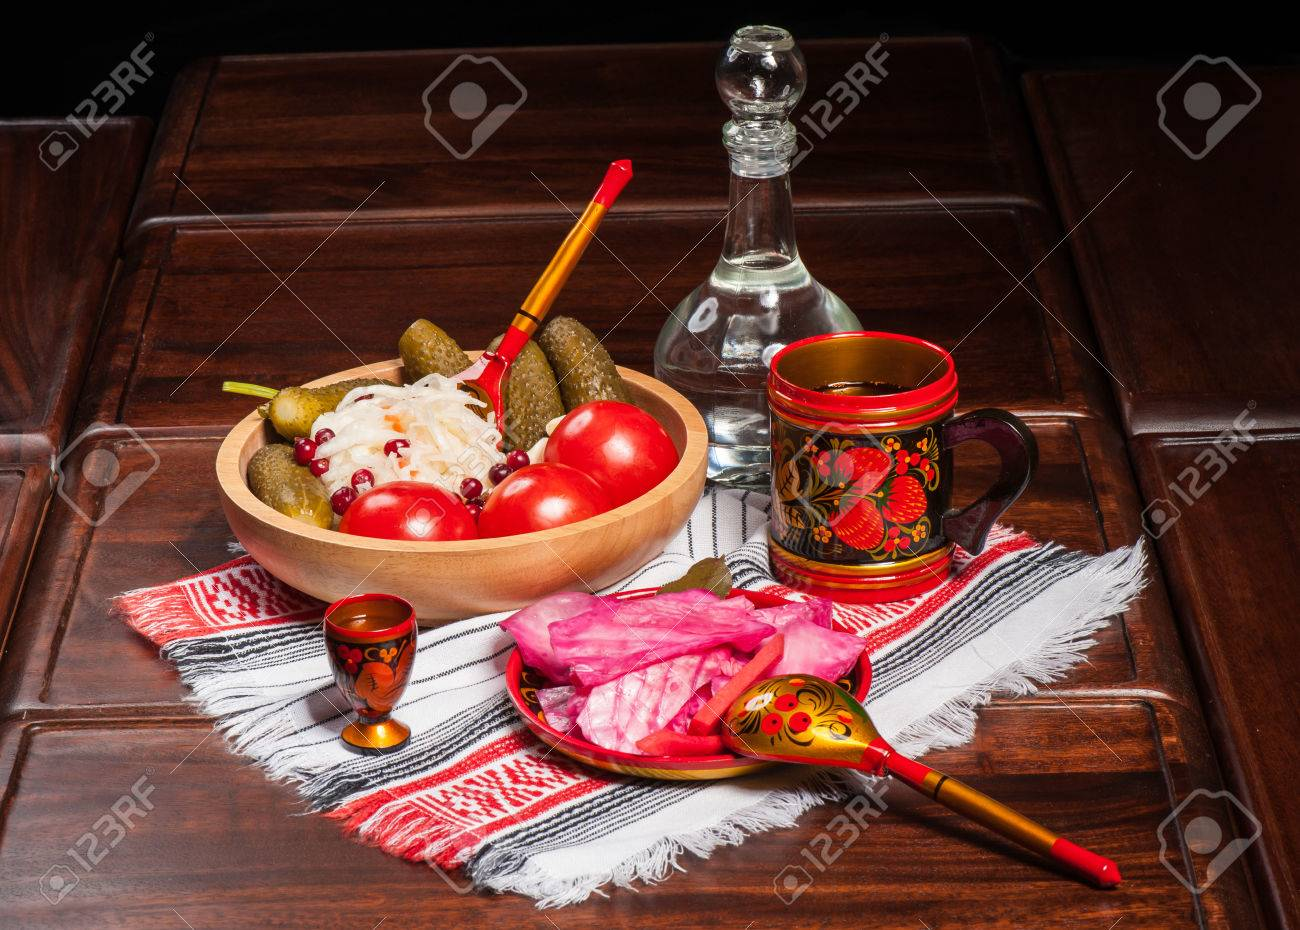 Stock Photo - Traditional russian pickled vegetables in painted wooden tableware : traditional russian tableware - pezcame.com